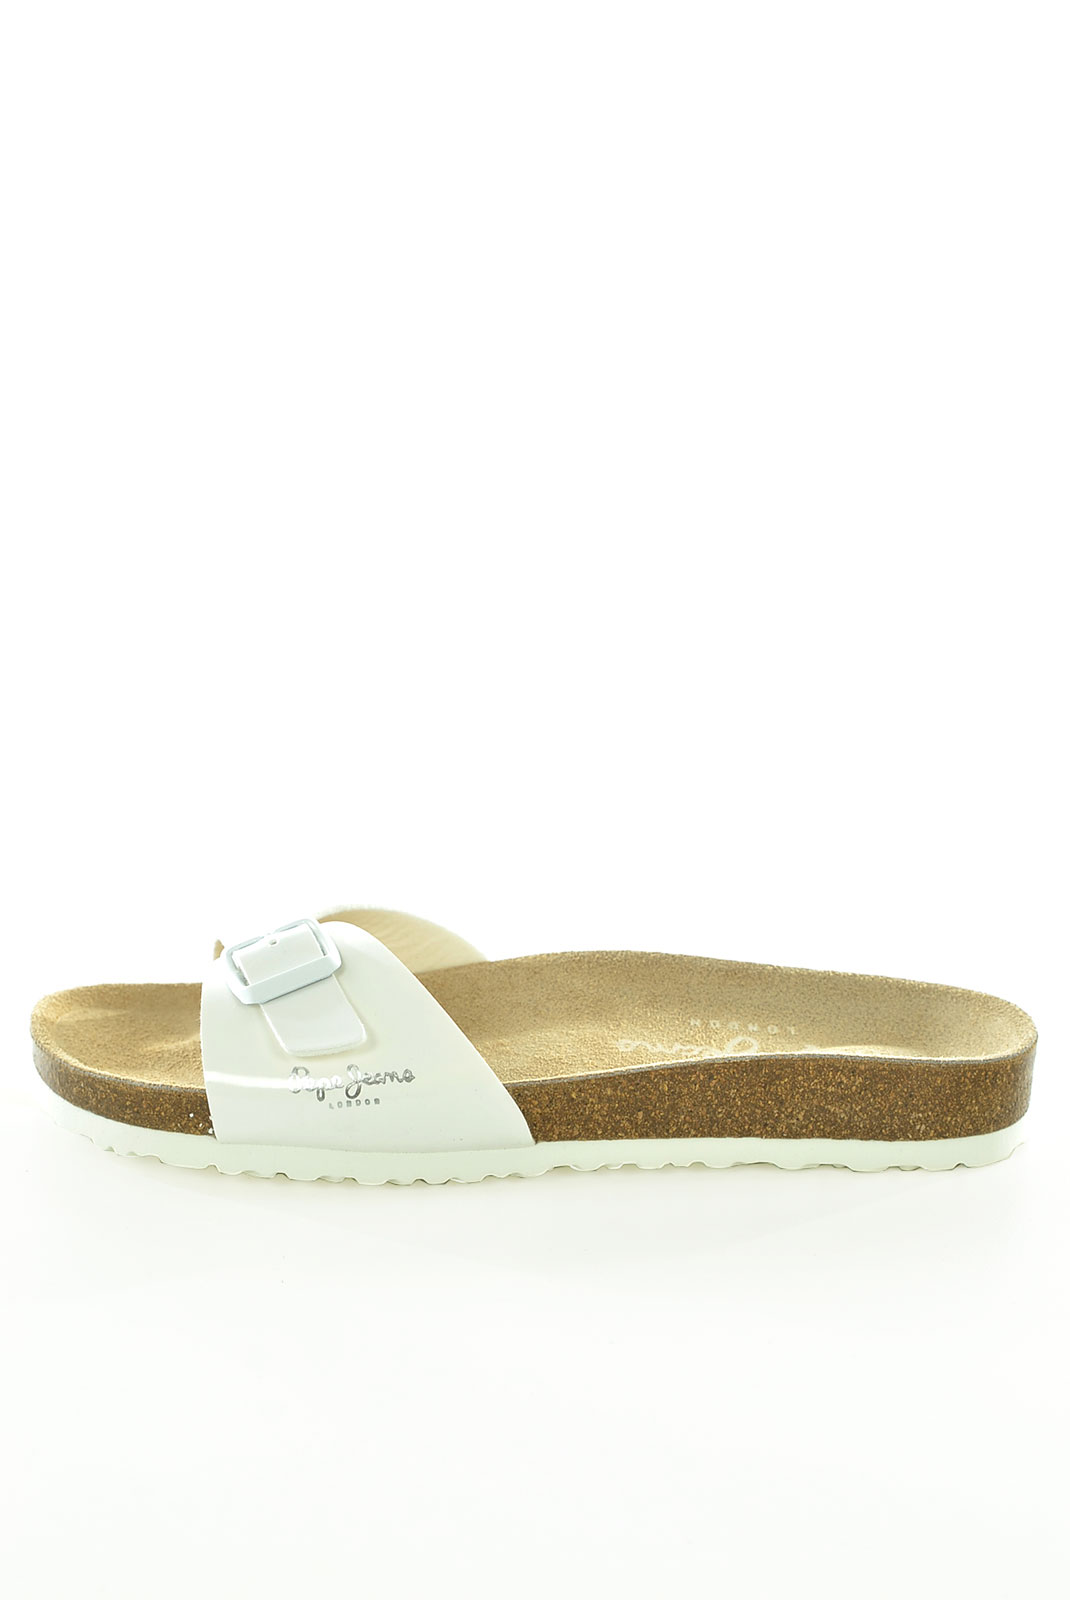 Tongs / Mules  Pepe jeans OBAN PLS90024 800 WHITE